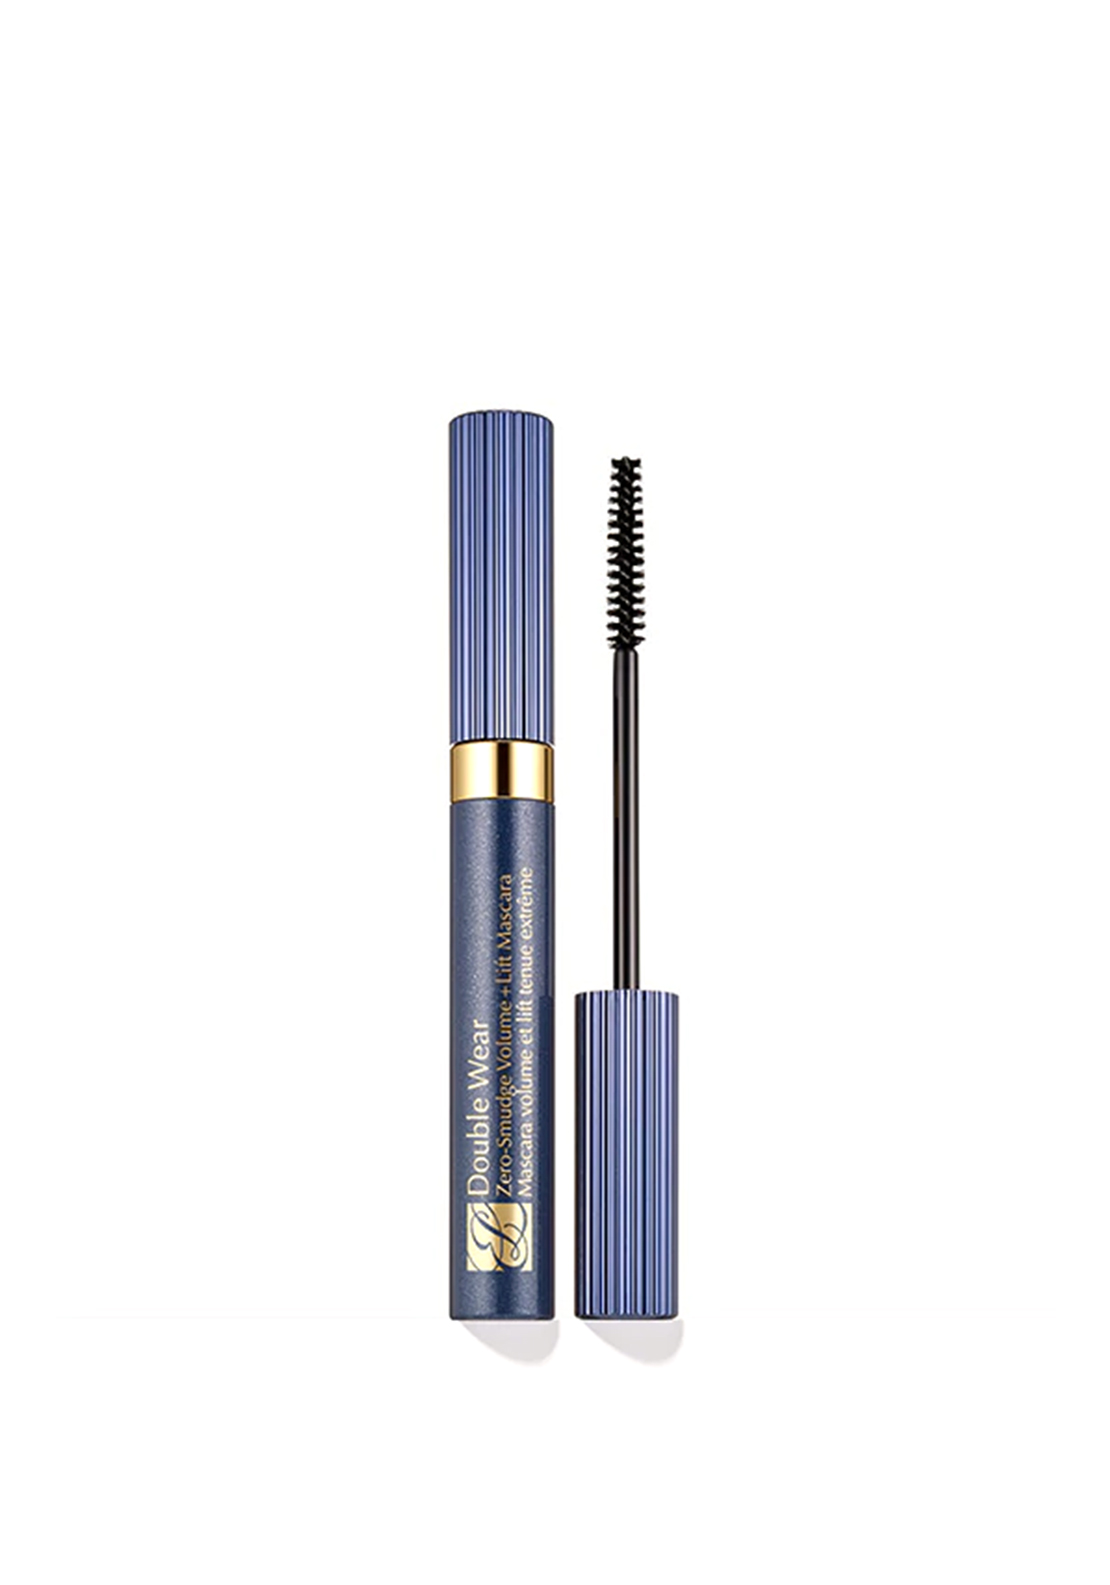 Estee Lauder Double Wear Zero Smudge Volume & Lift Mascara, Black